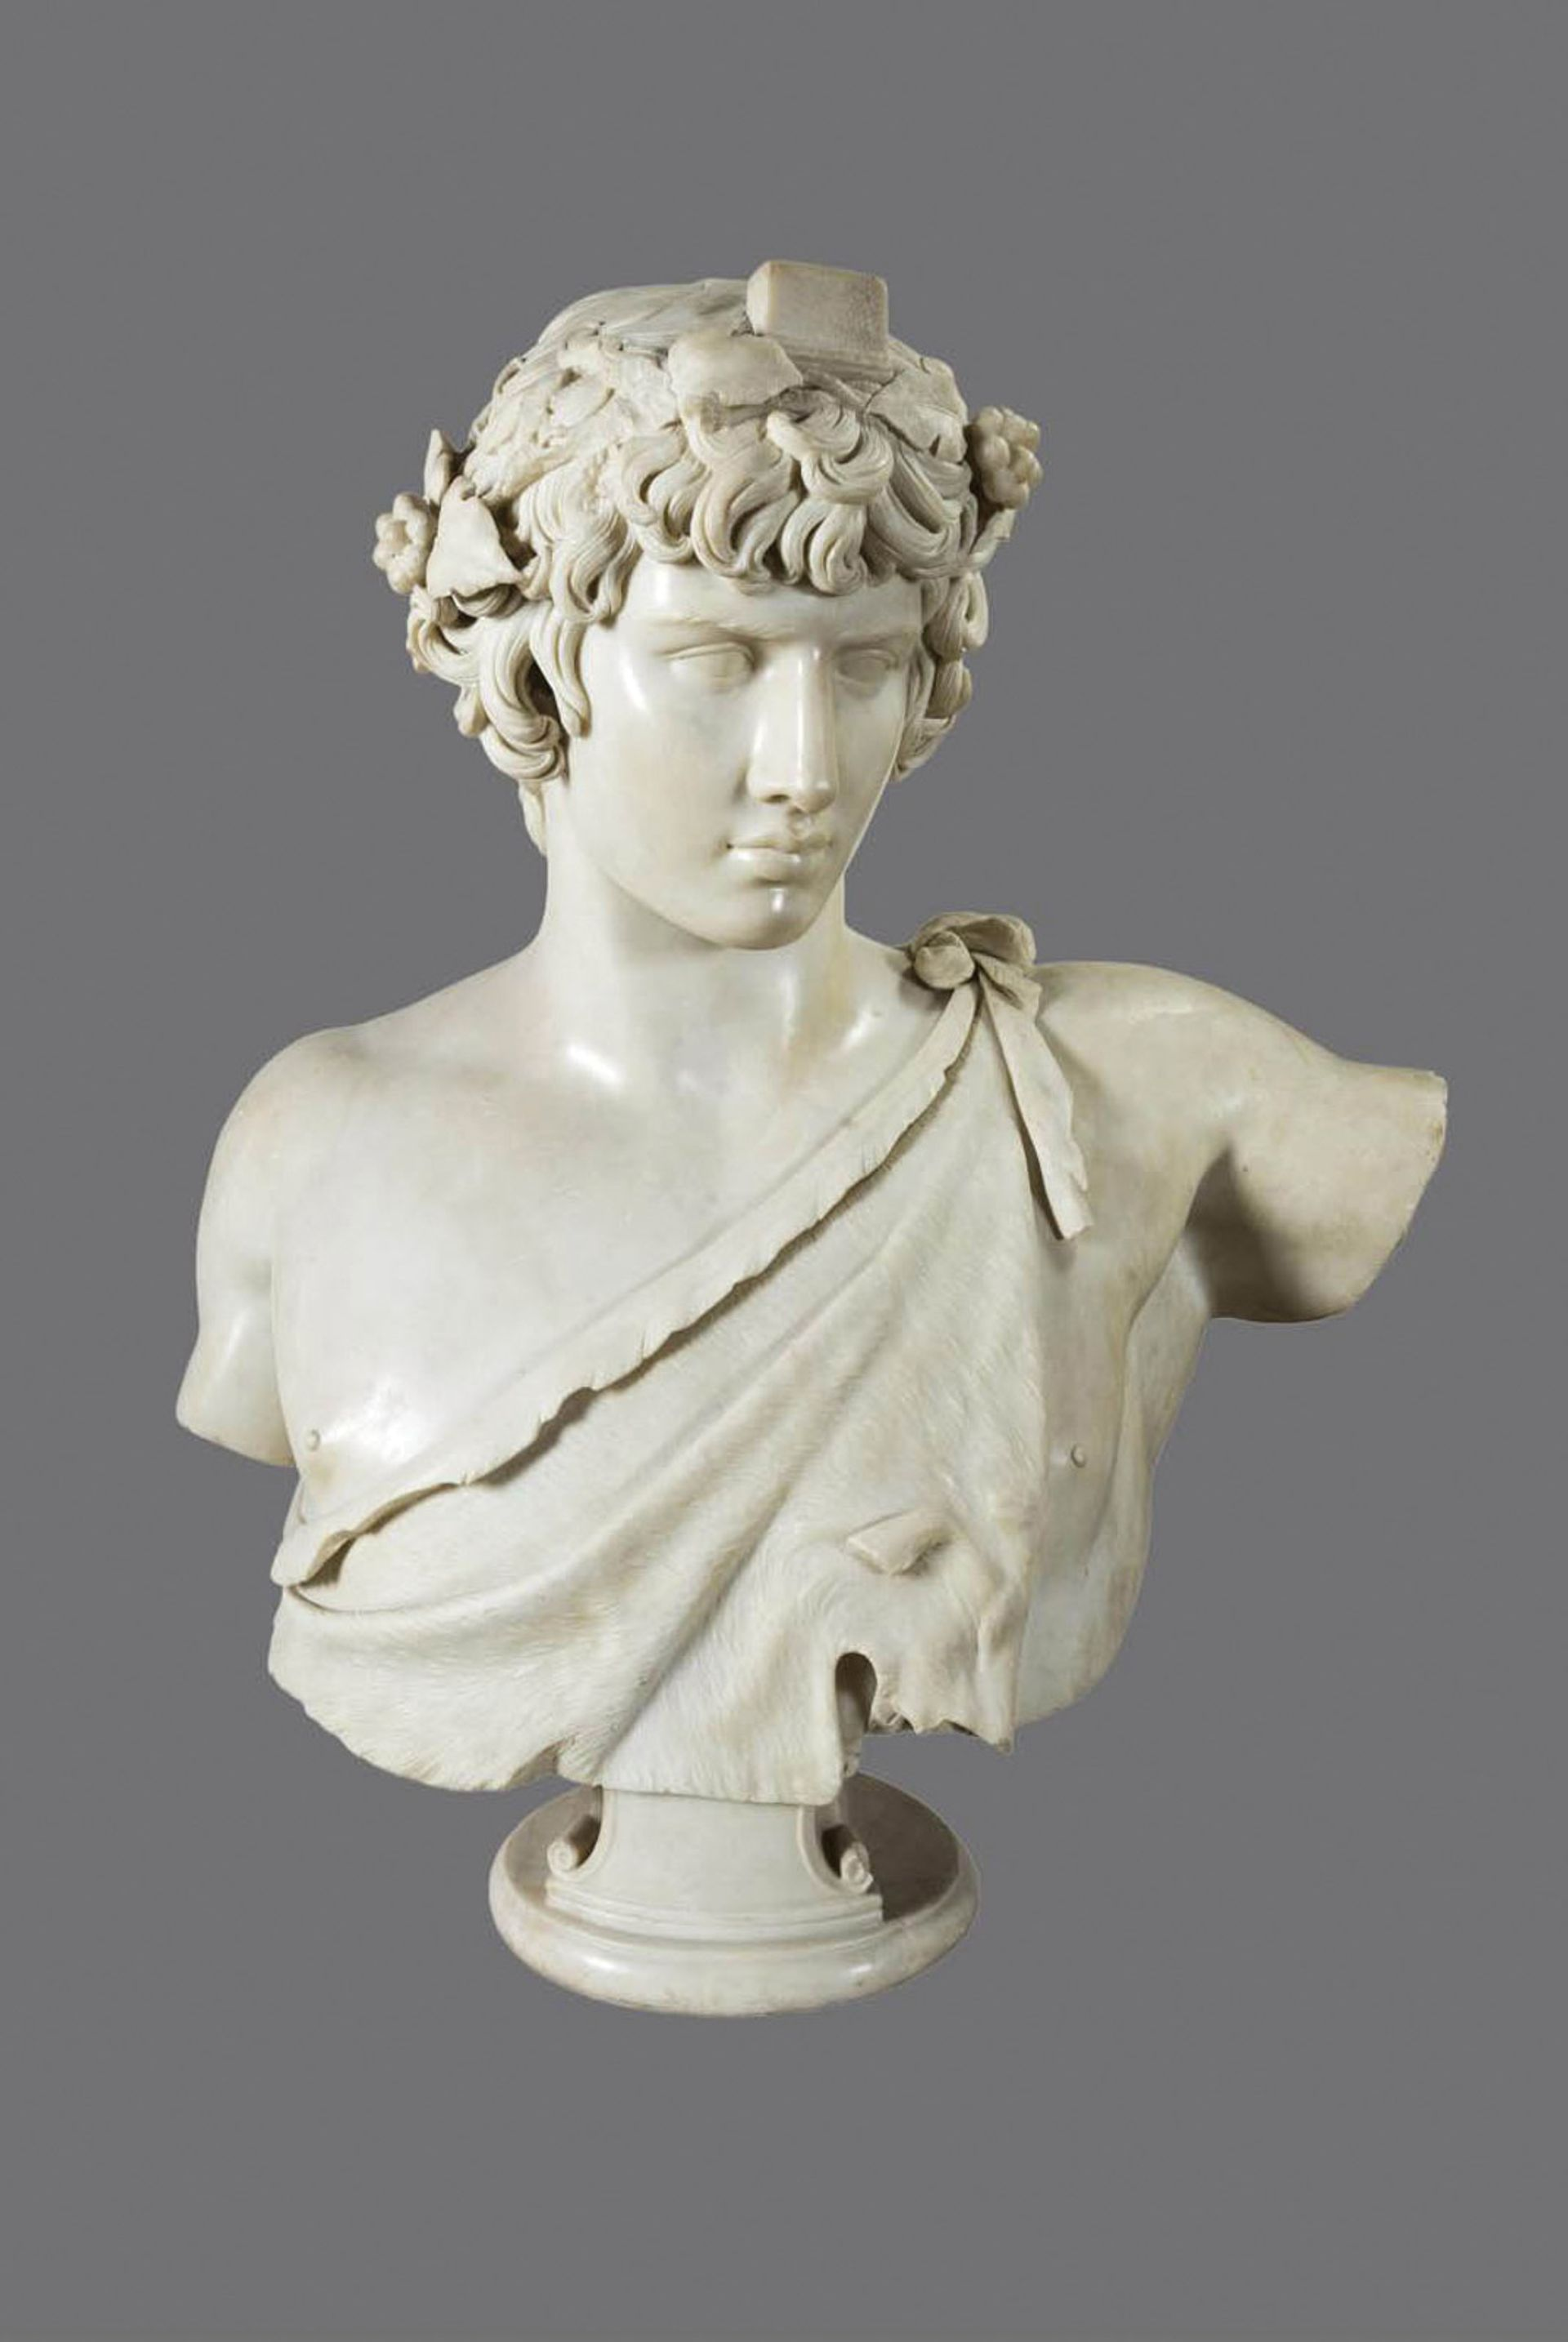 The Grimani collection of 200 statues will stay in its original home for two years Courtesy of Venetian Heritage